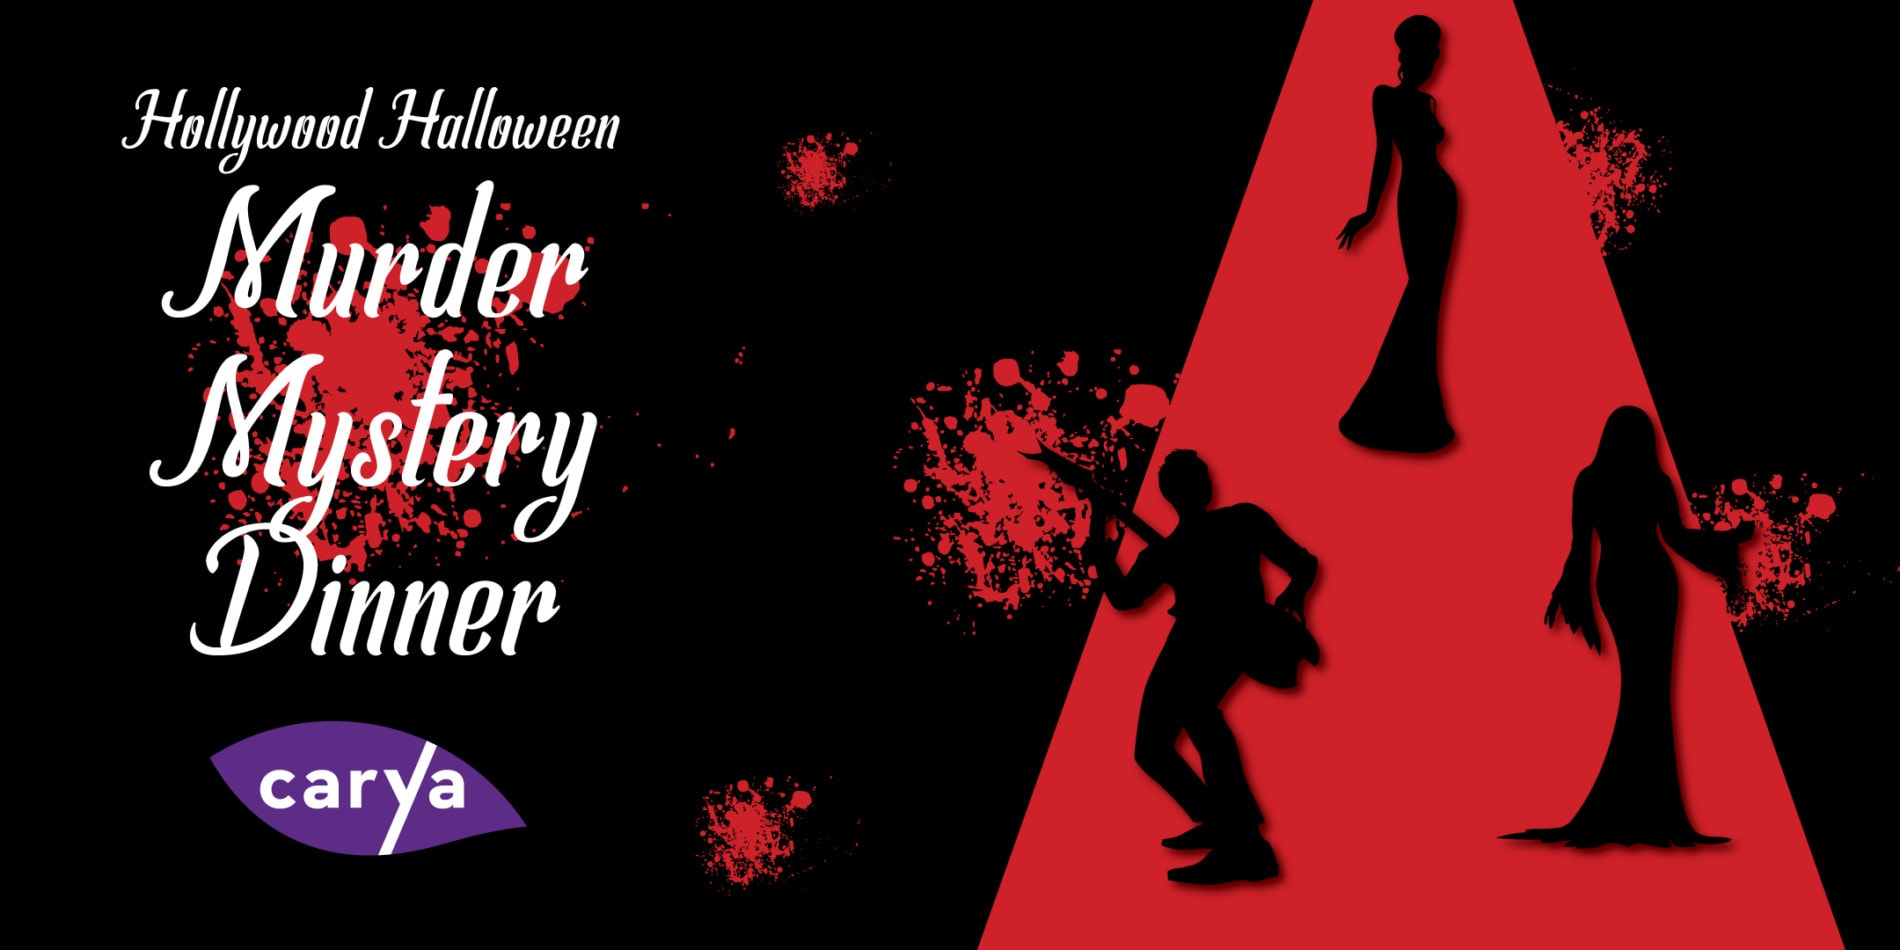 hollywood halloween murder mystery dinner - carya